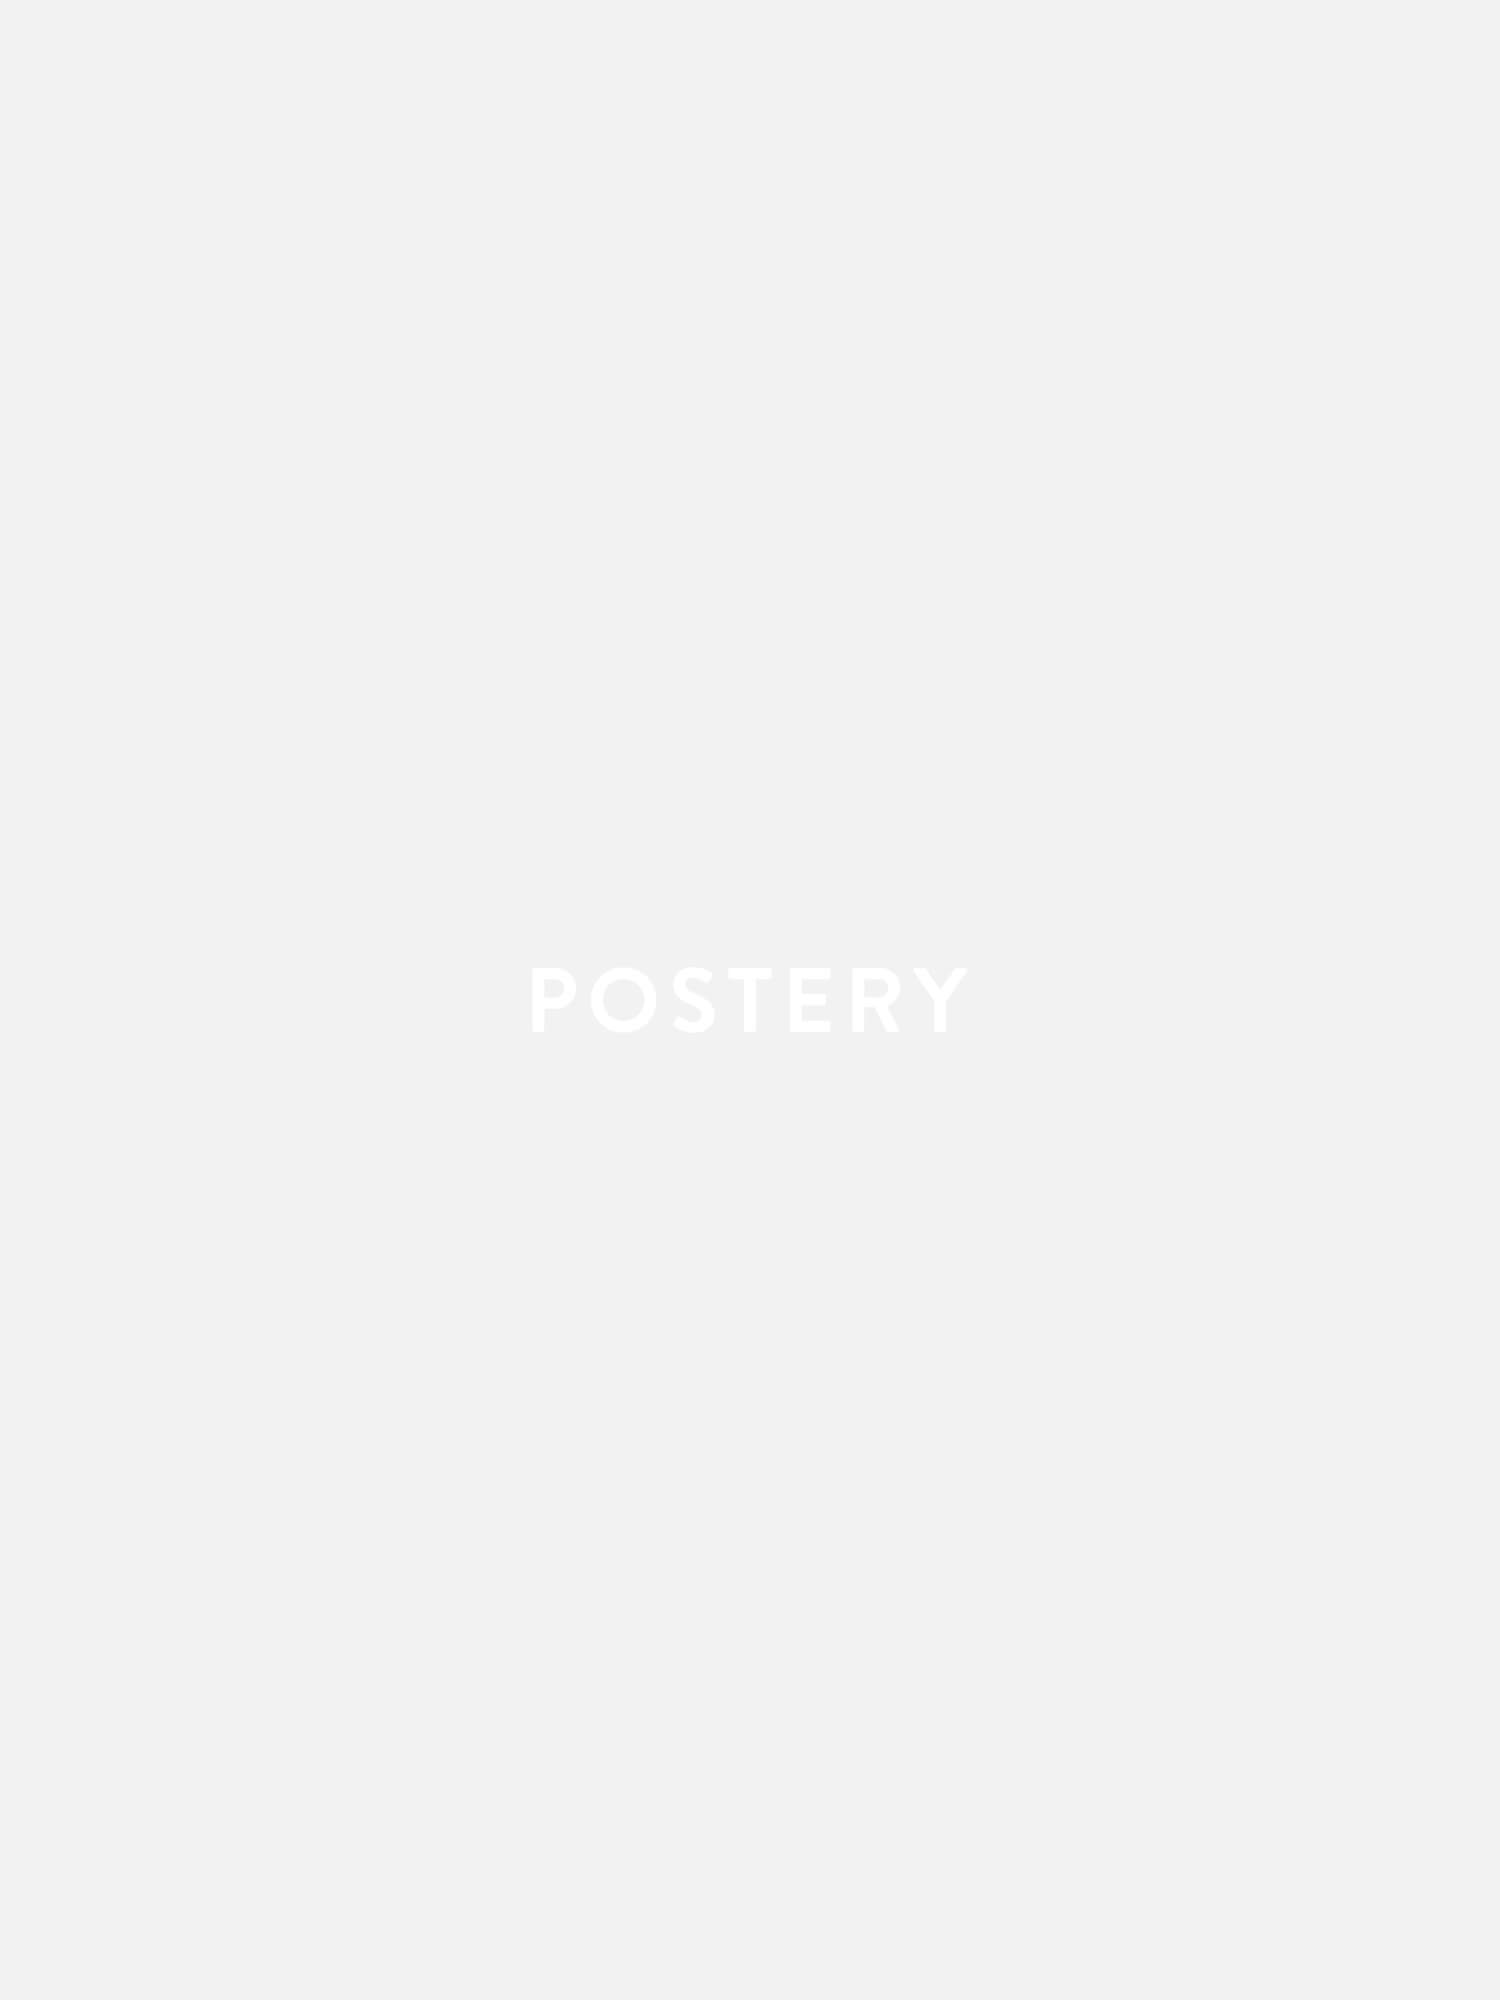 Sunset Grass Poster